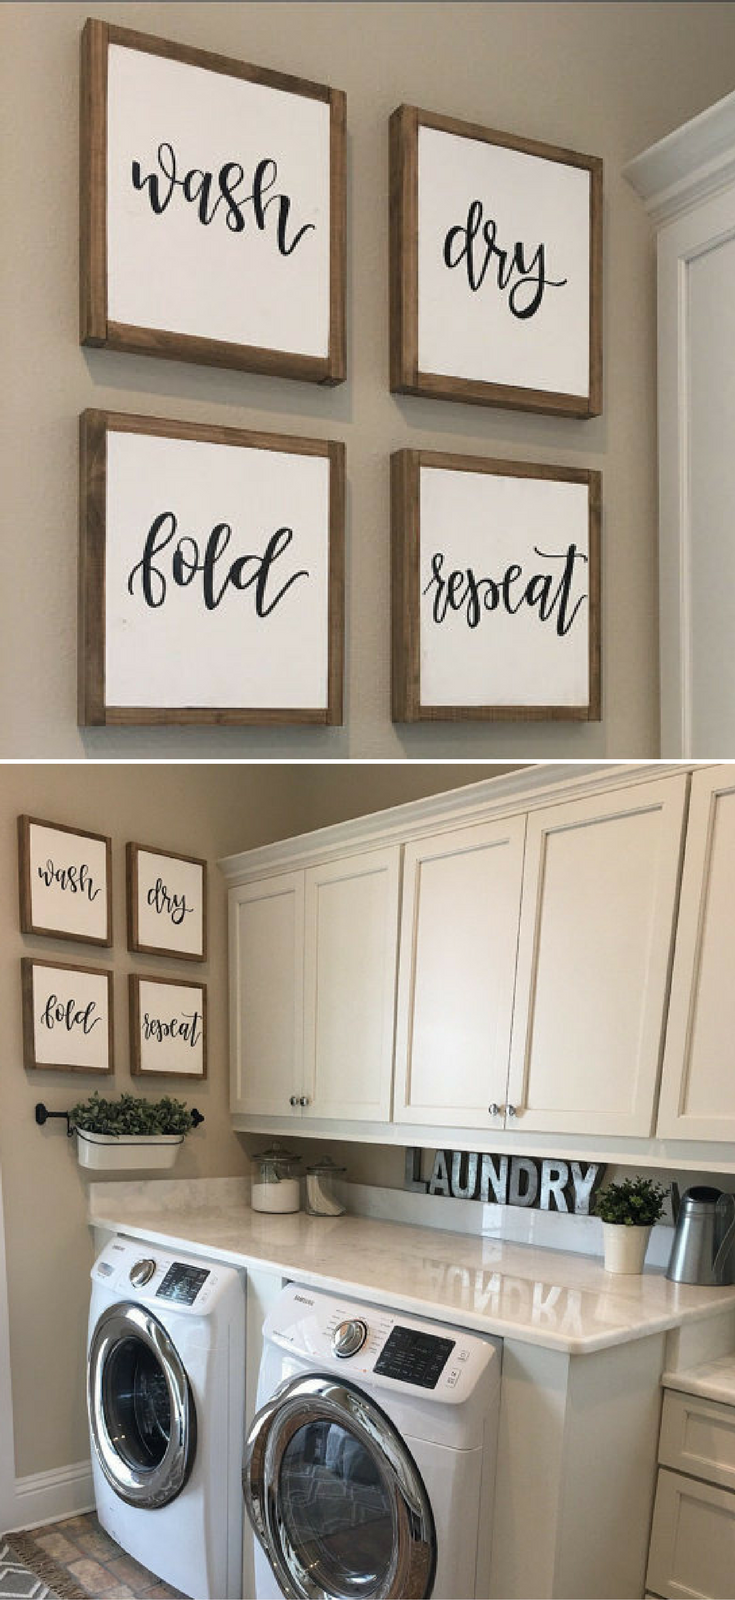 Laundry Room Sign Laundry Sign Wash Dry Fold Repeat